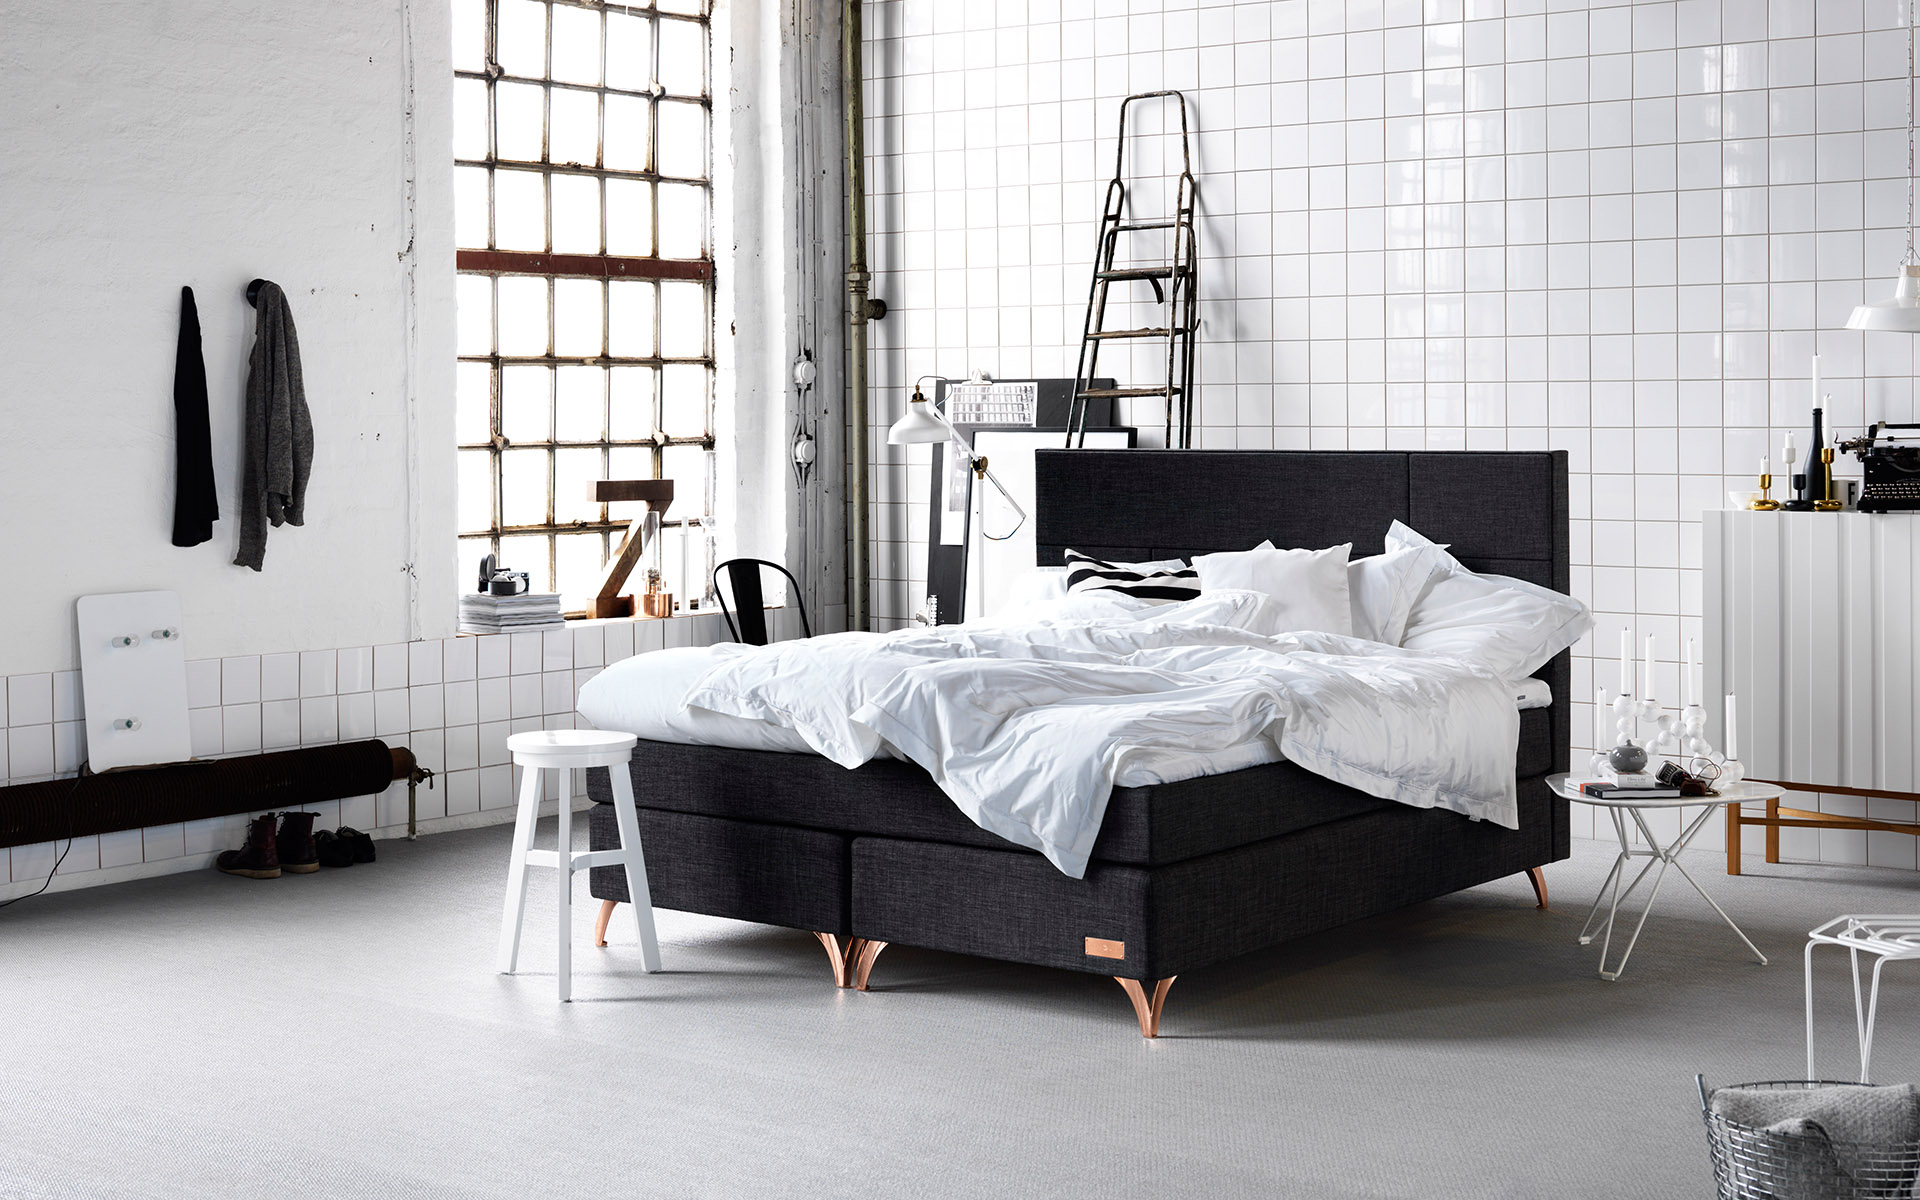 carpe diem h rman boxspringbett m belzentrum. Black Bedroom Furniture Sets. Home Design Ideas